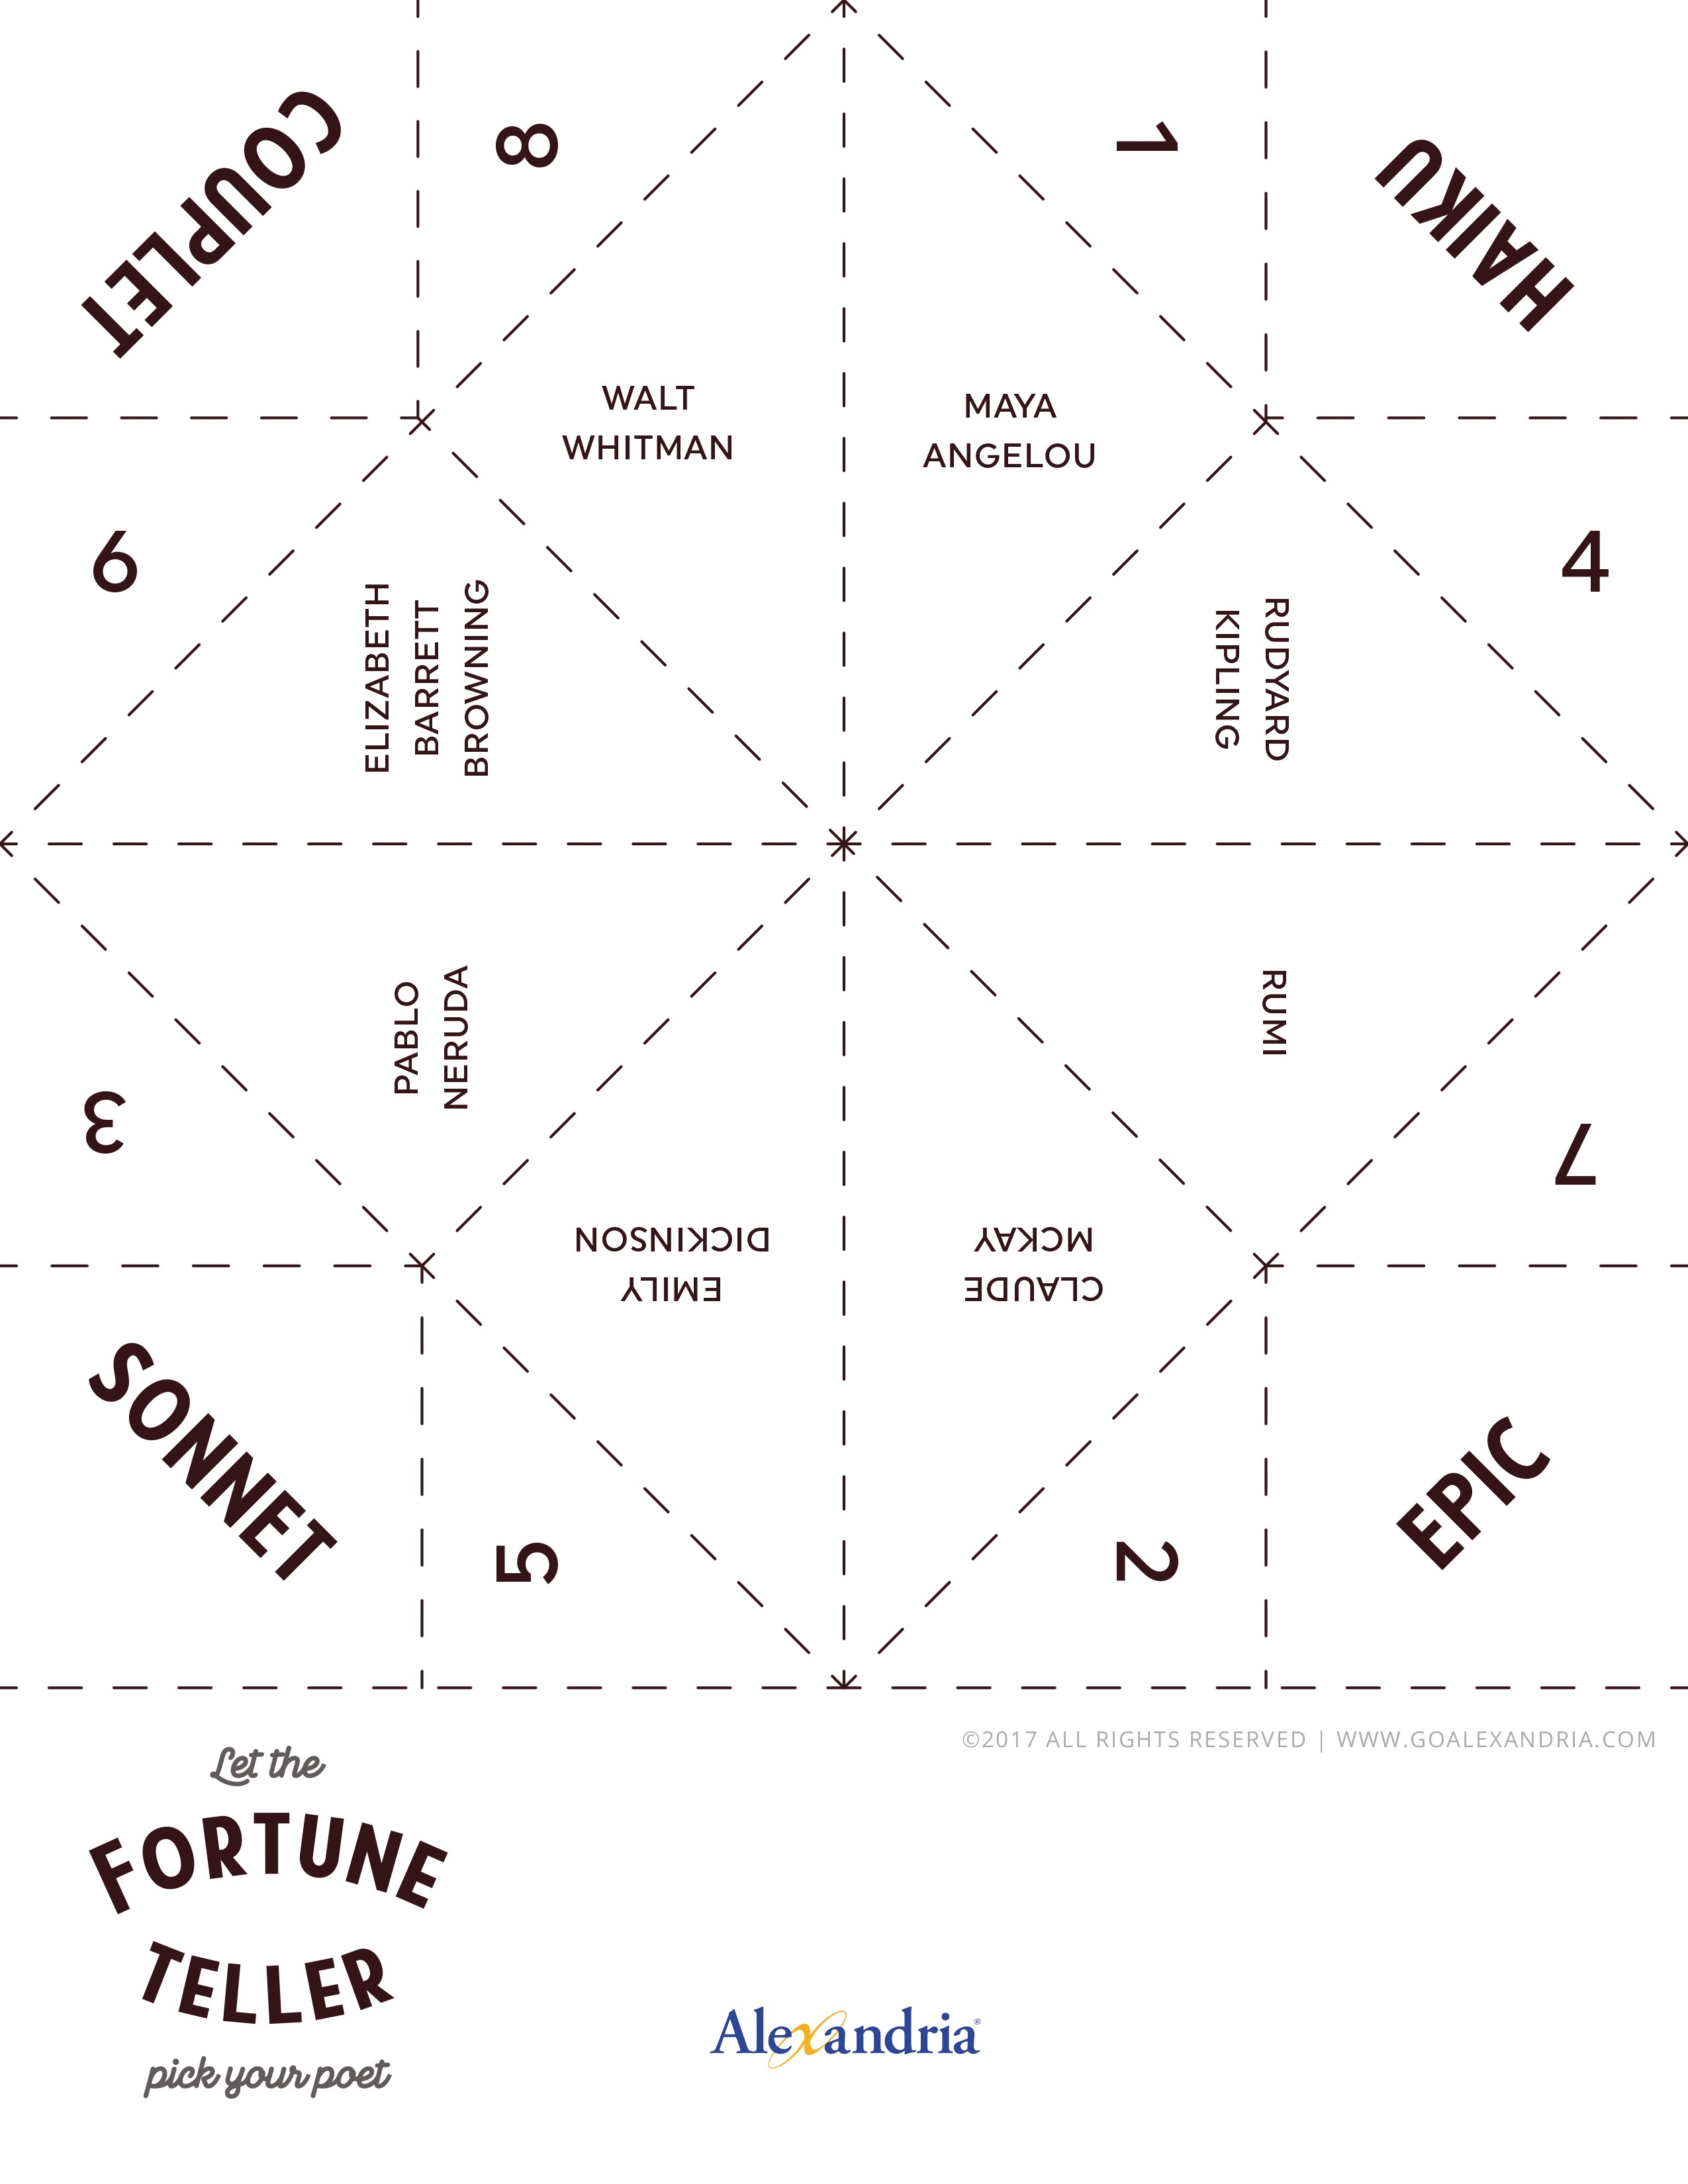 Pick a poet fortune teller lesson plan ideas alexandria place the sign near the fortune teller to entice patrons to tempt fate jeuxipadfo Gallery